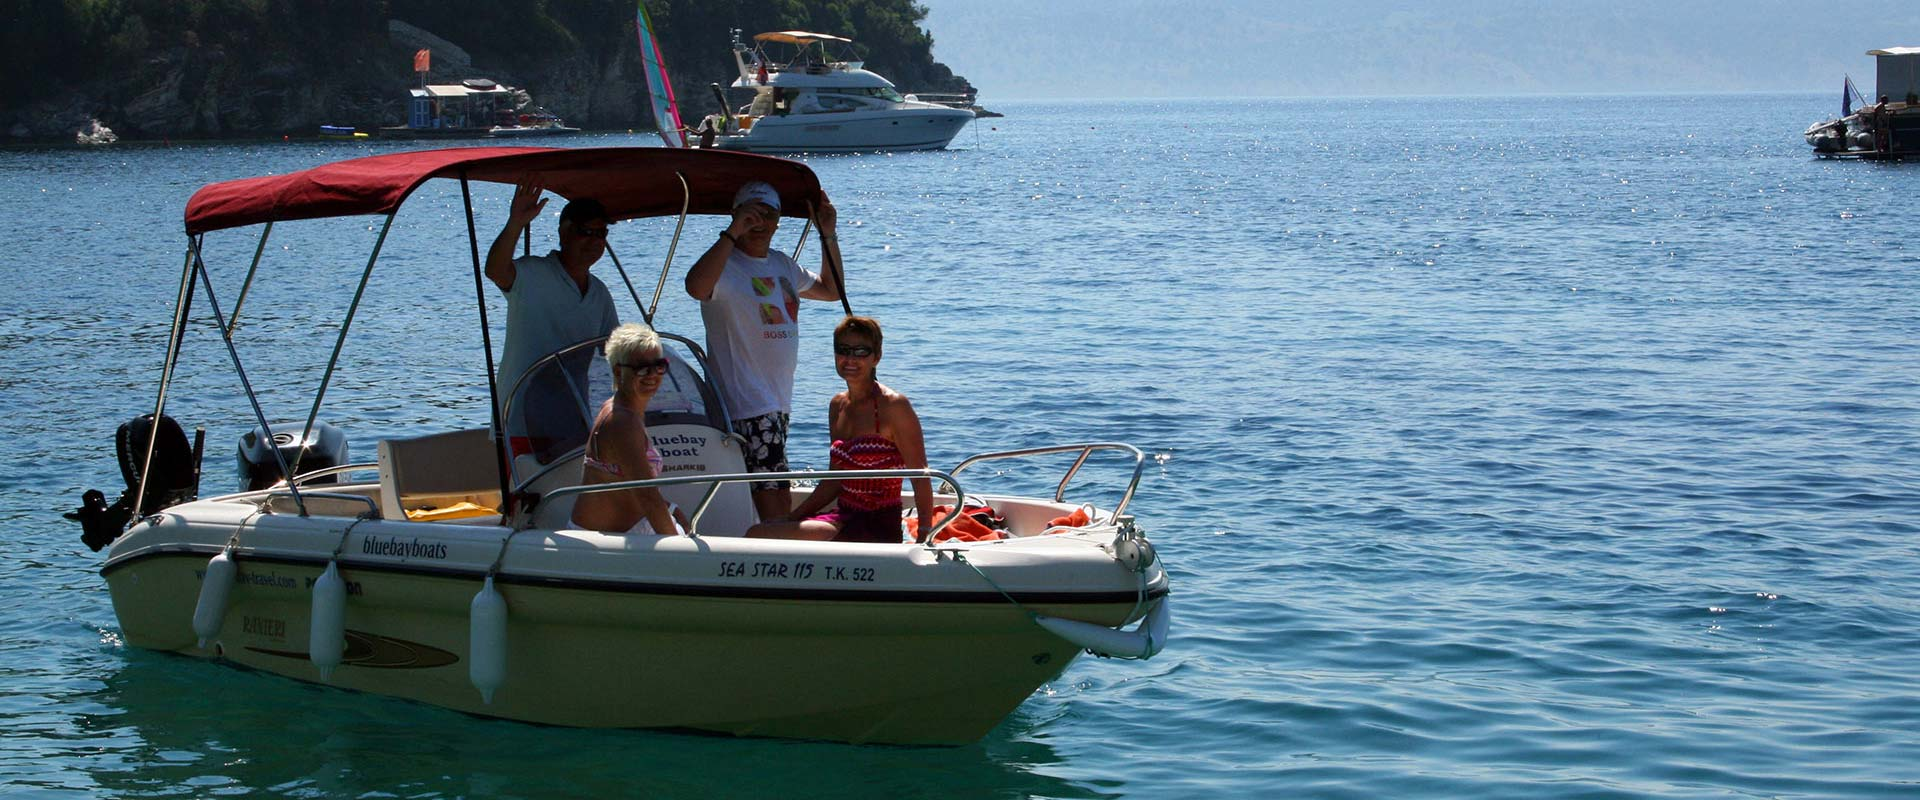 bluebayboats-corfu-kalami-boat-hire